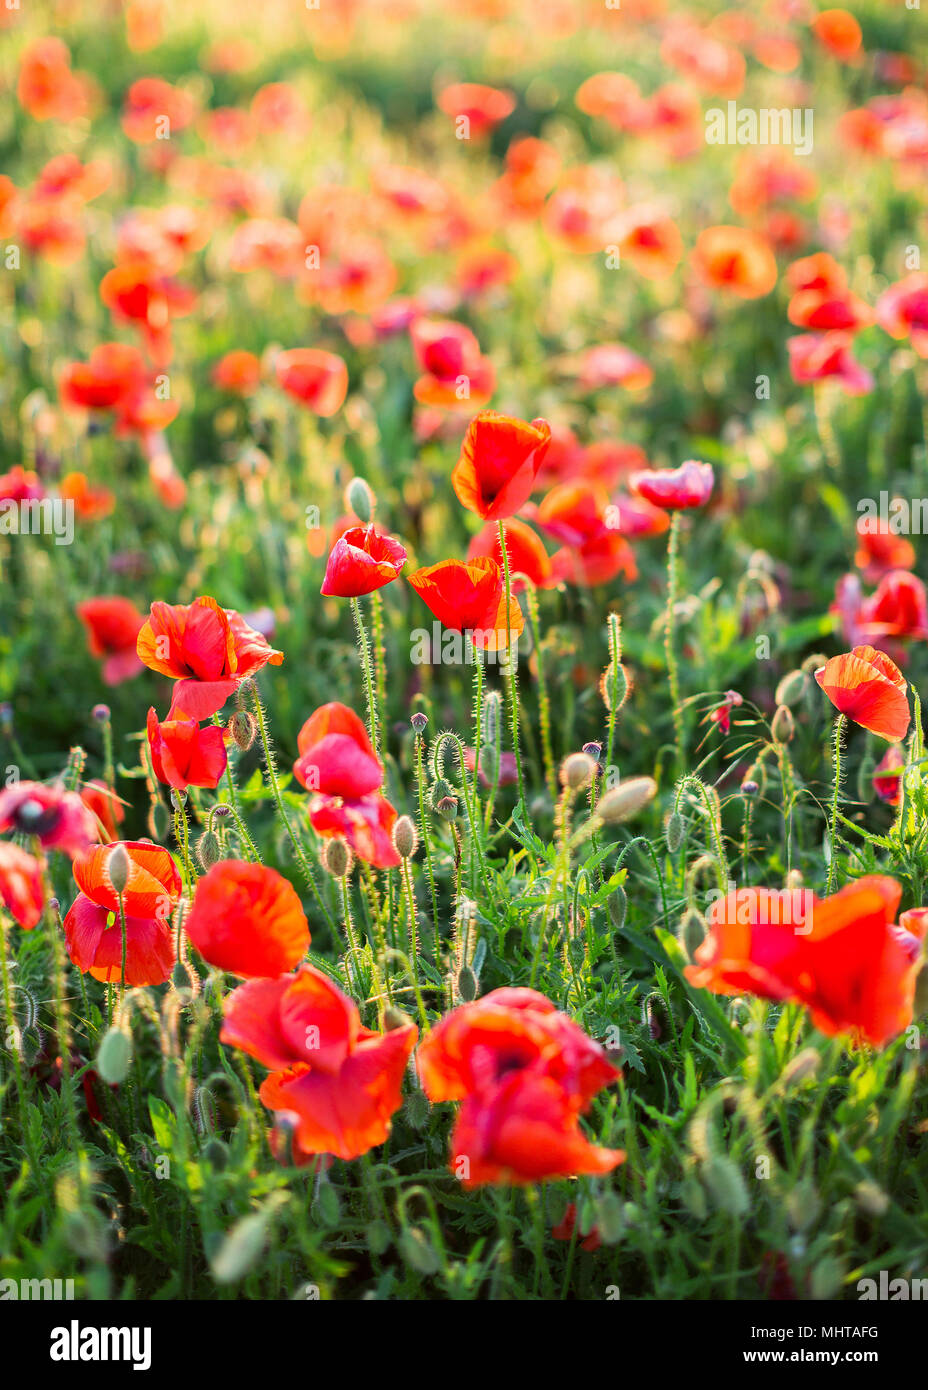 Nature Spring Summer Blooming Red Flowers Concept Close Up Of